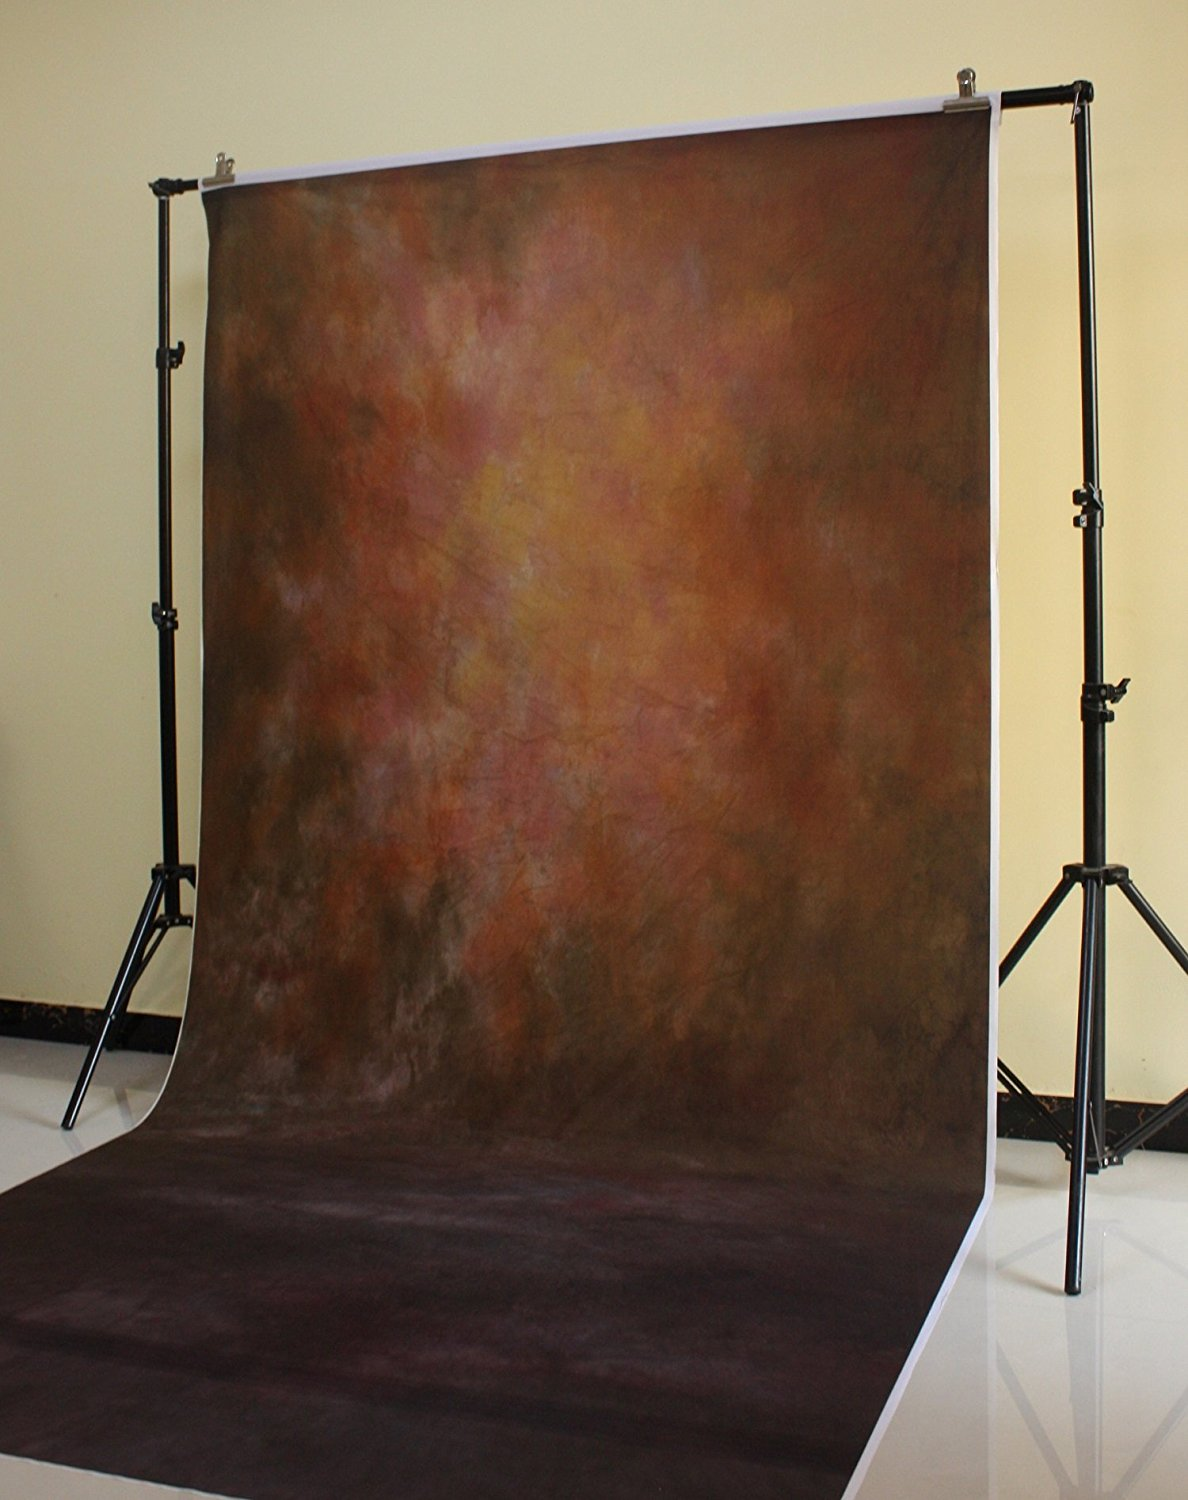 Background Kayu Warna Coklat Us 57 150x300cm Cotton Polyester Dark Deep Color Background Christmas Party Children Photo Brown Wall Xt 3326 In Background From Consumer